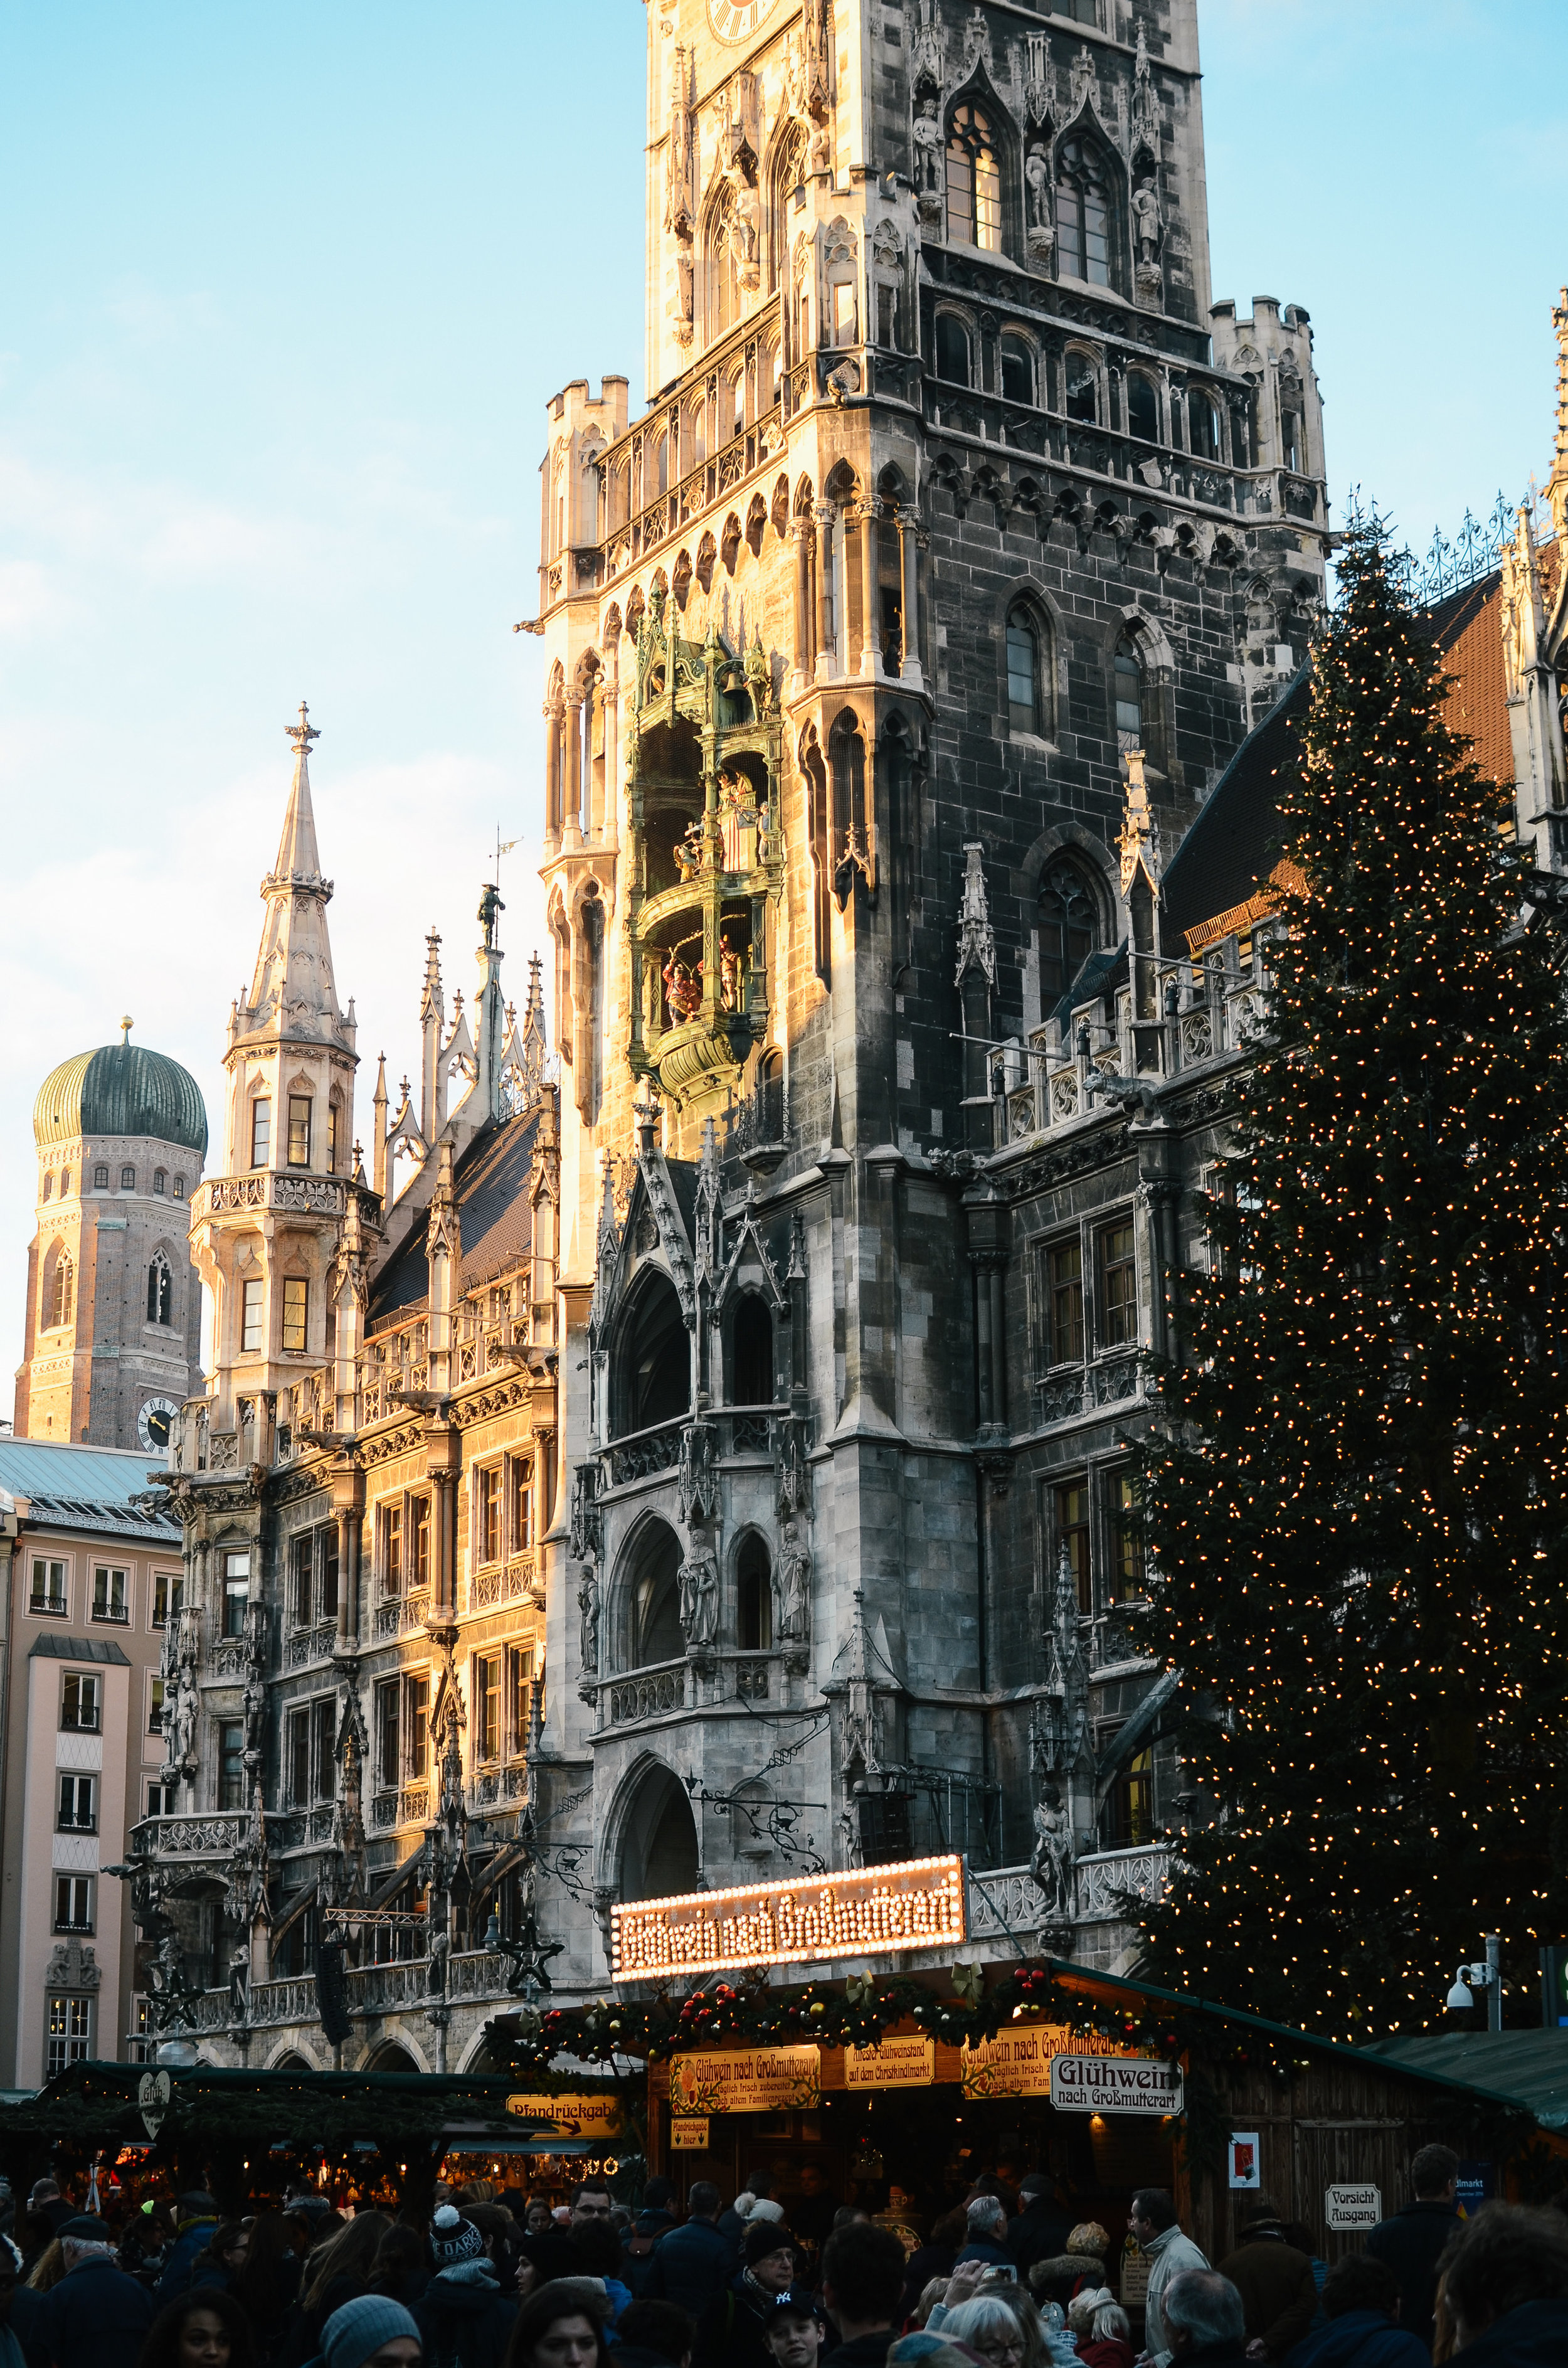 european-christmas-market-travel-guide-lifeonpine_DSC_1991.jpg